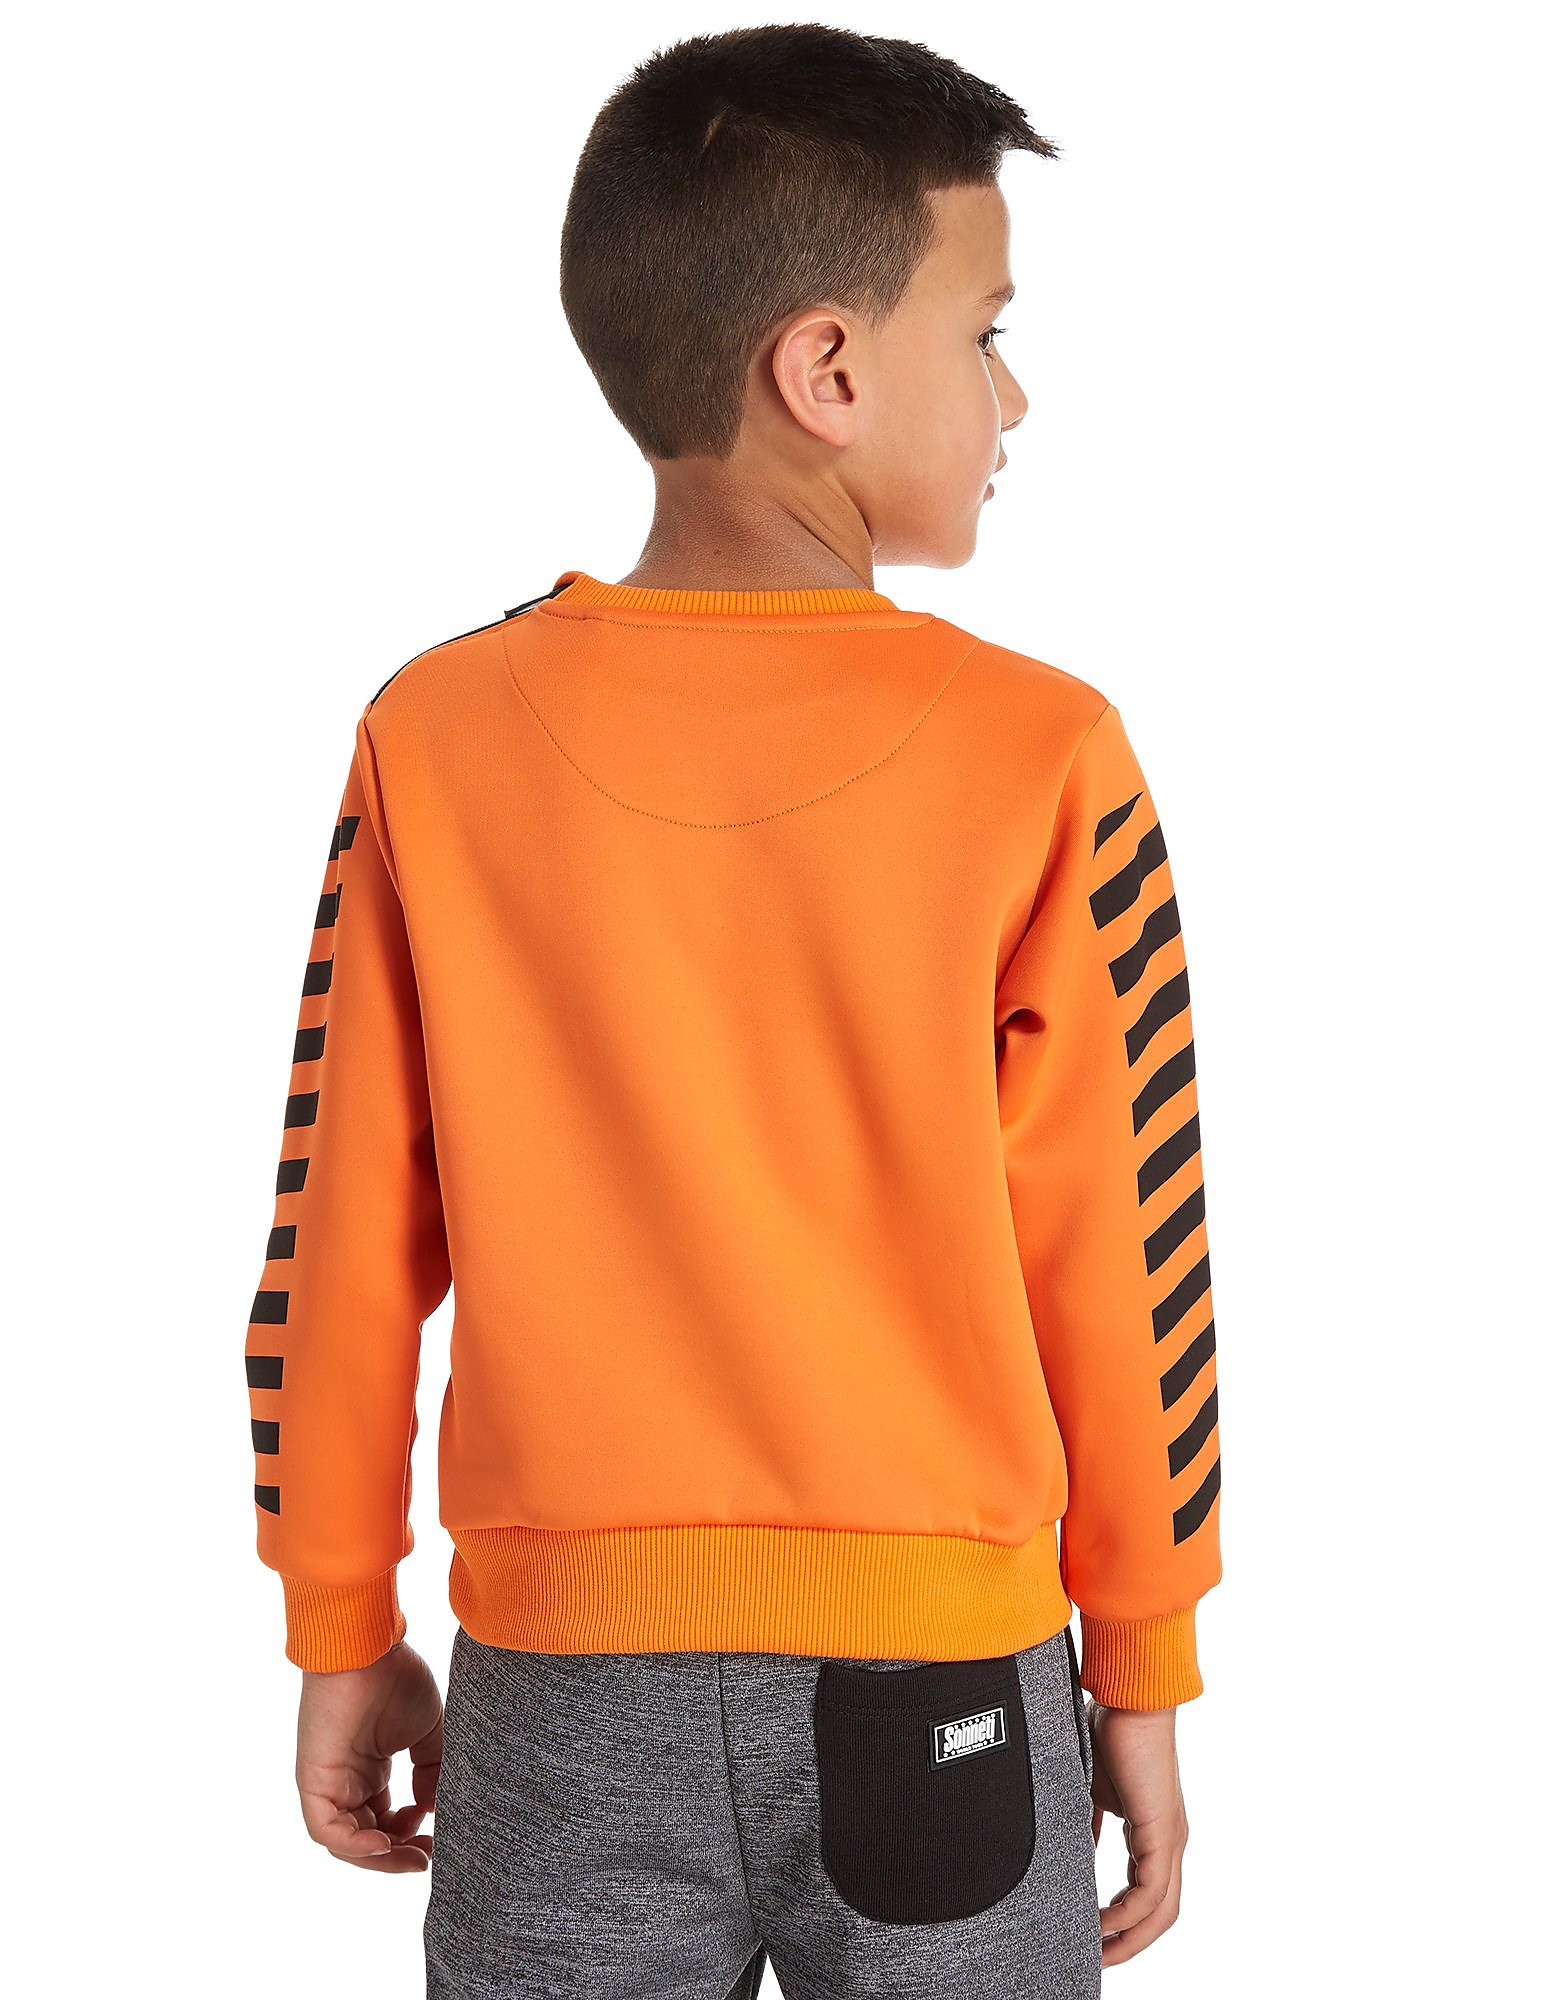 Sonneti Blade Run Sweatshirt Children